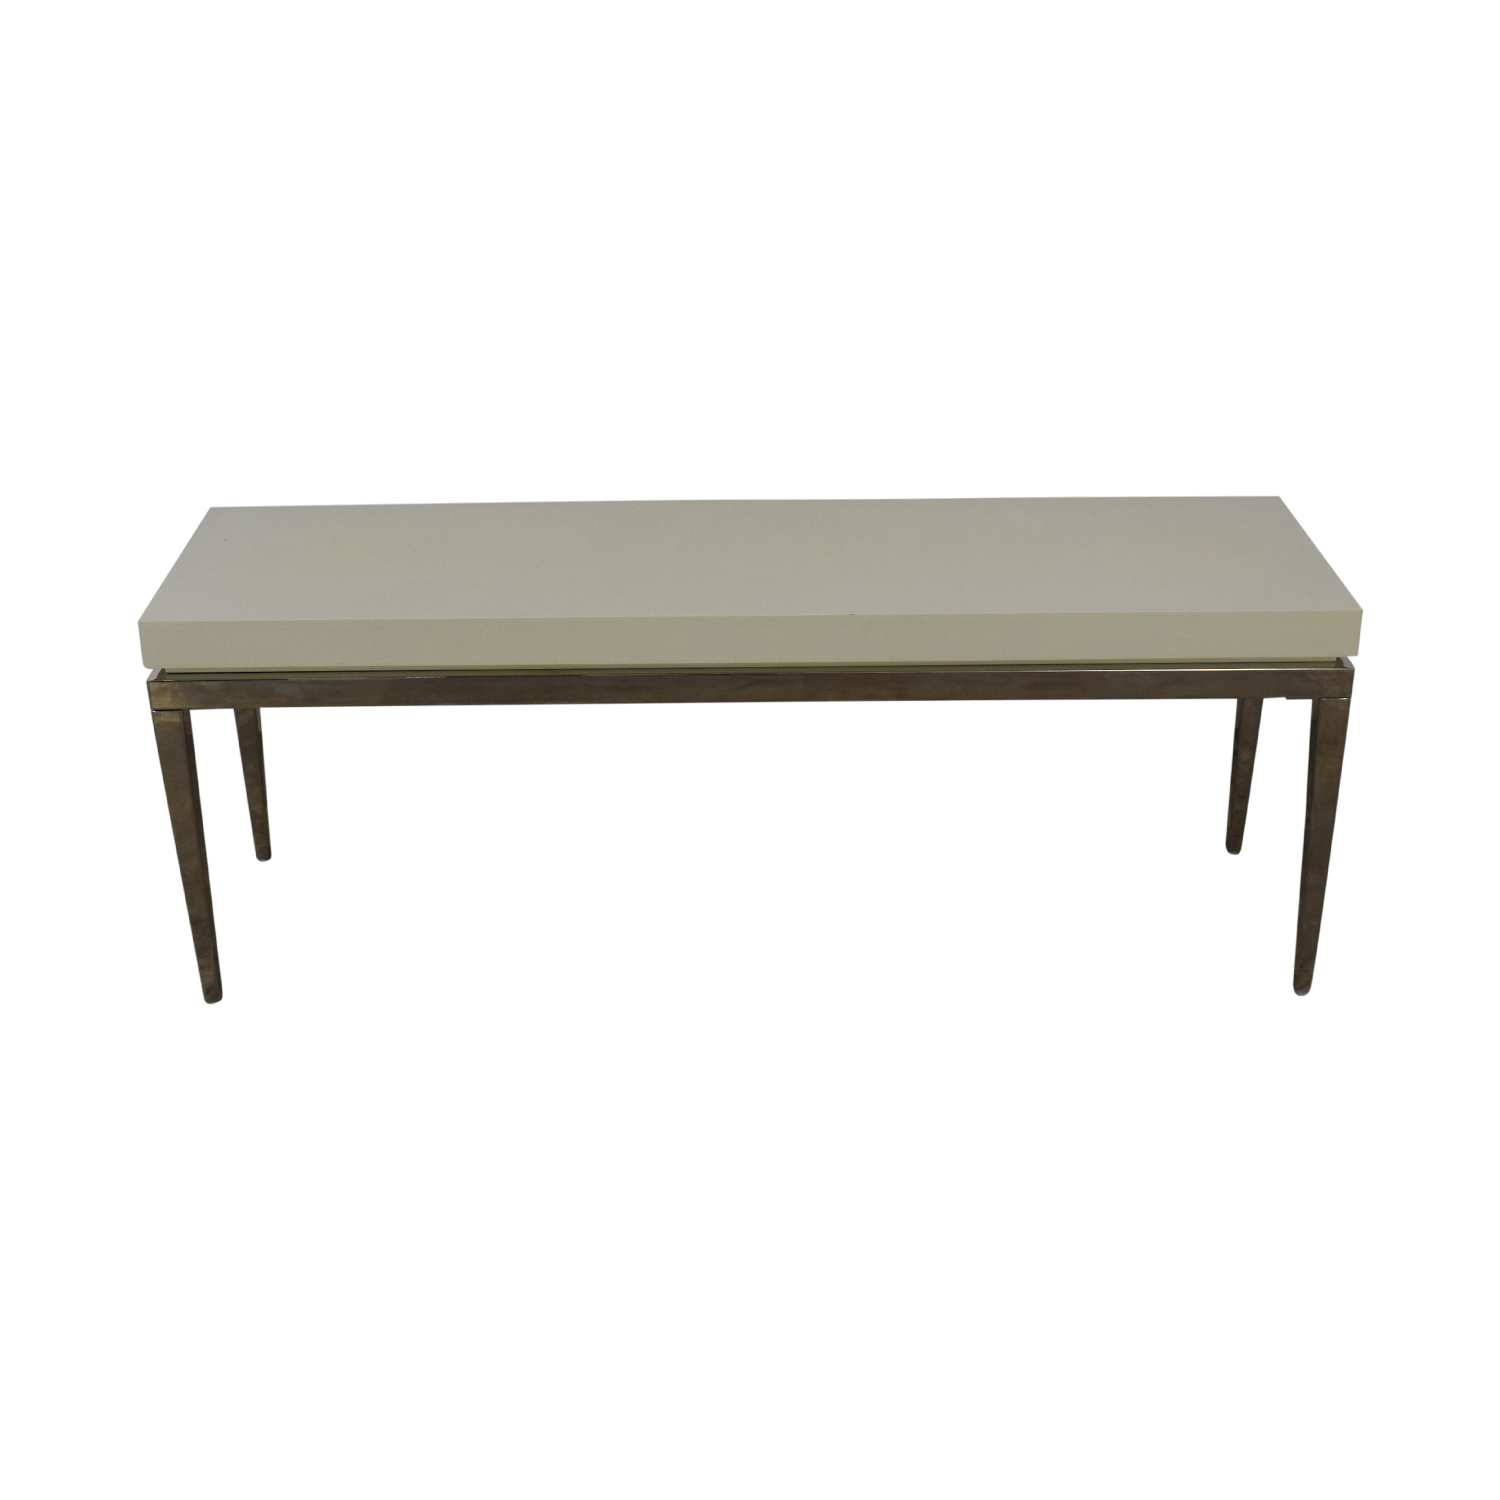 shop Jonathan Adler Jonathan Adler White and Silver Console Table online